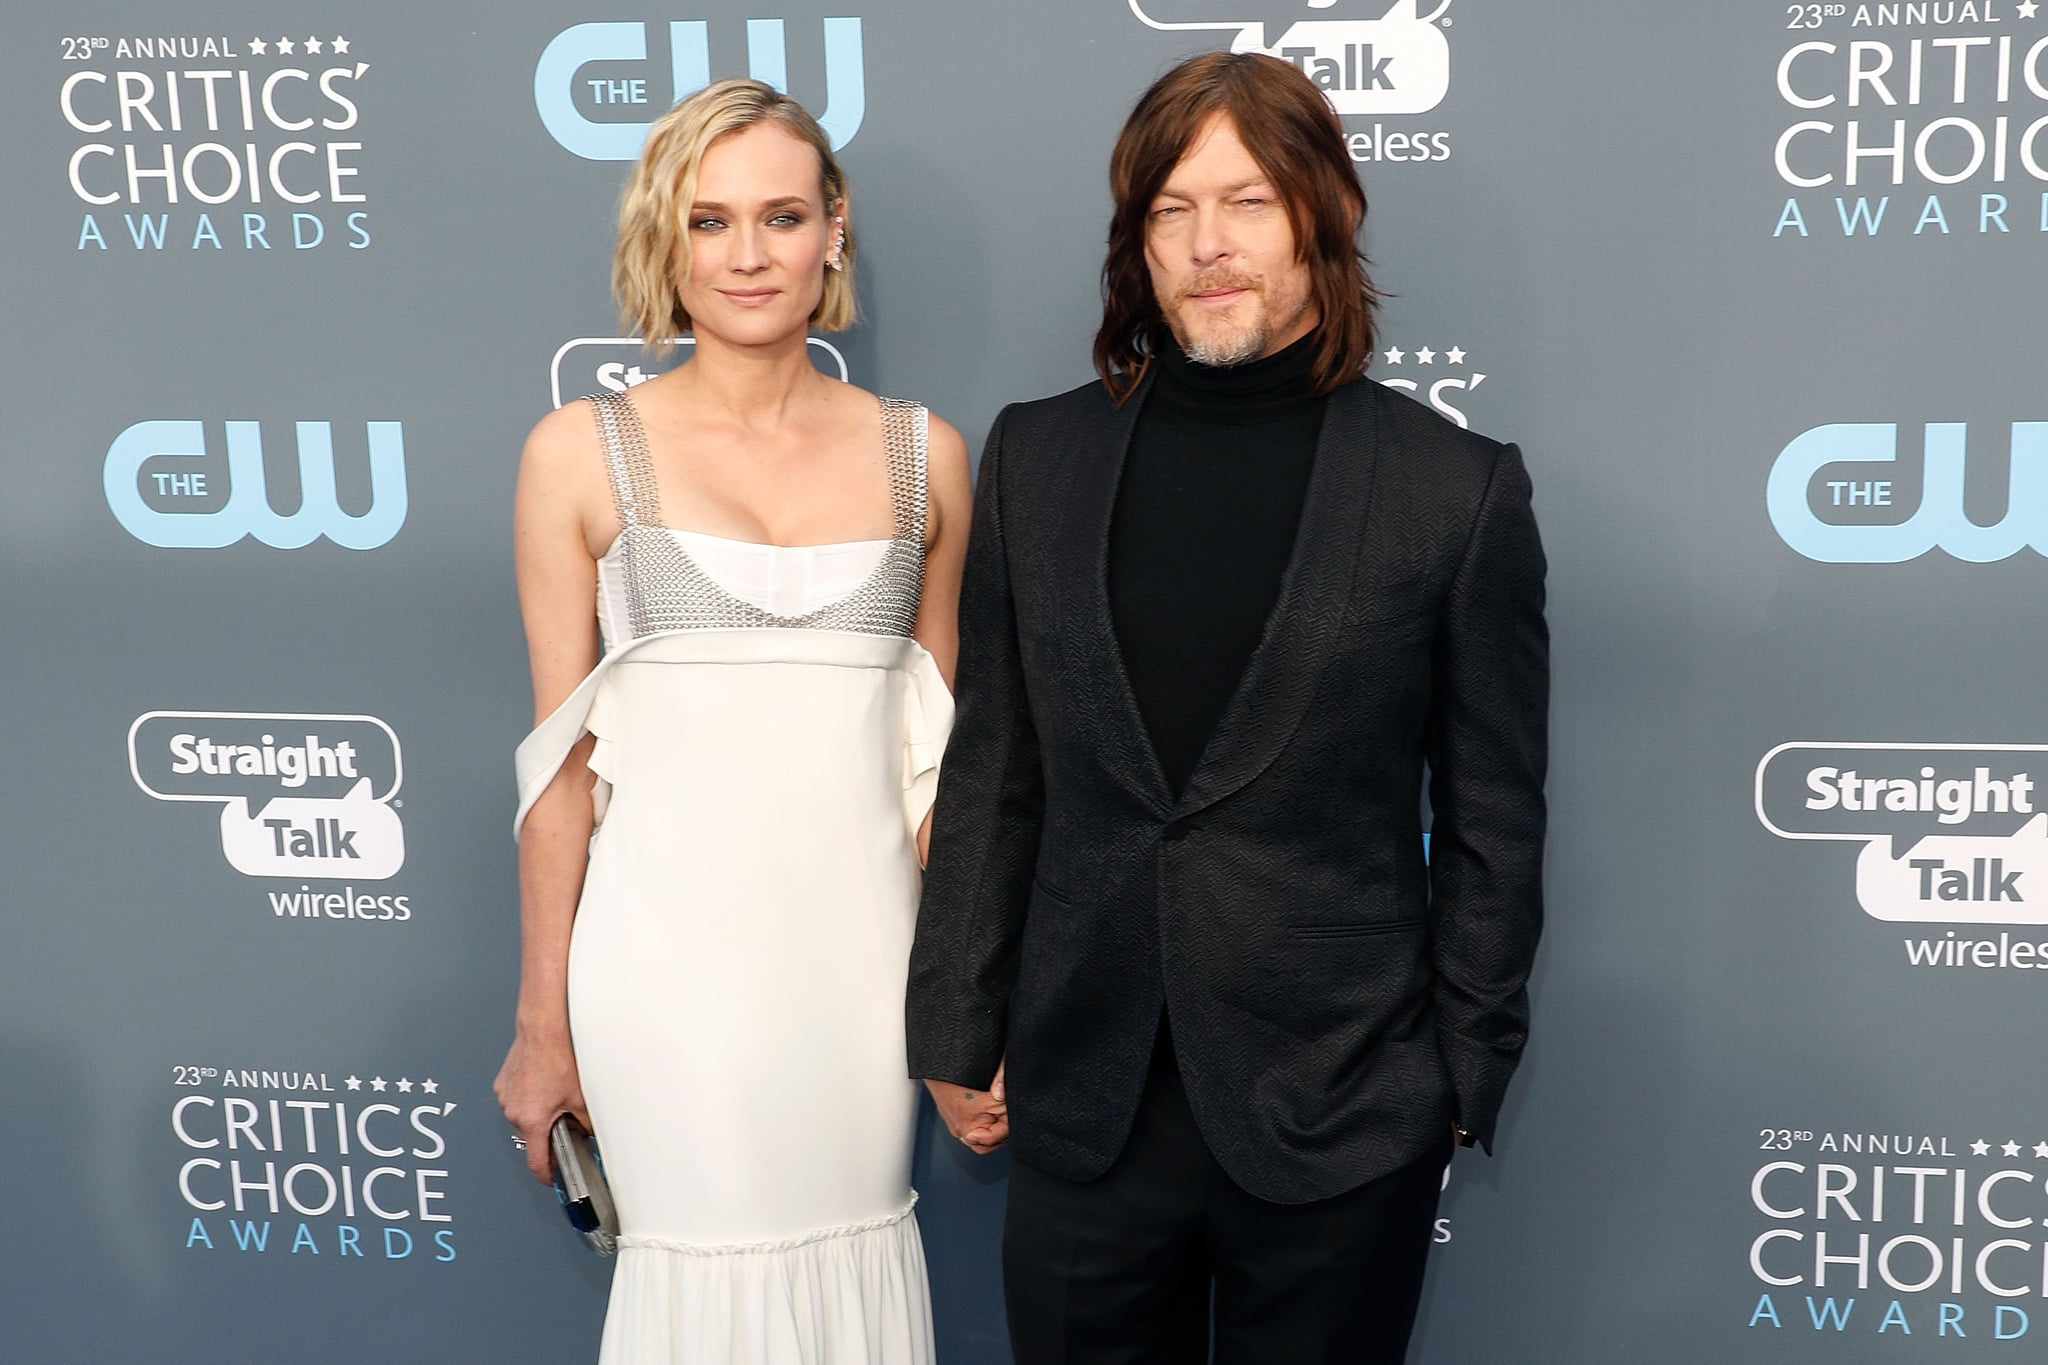 2a008ec177 Did Norman Reedus and Diane Kruger Have a Boy or Girl